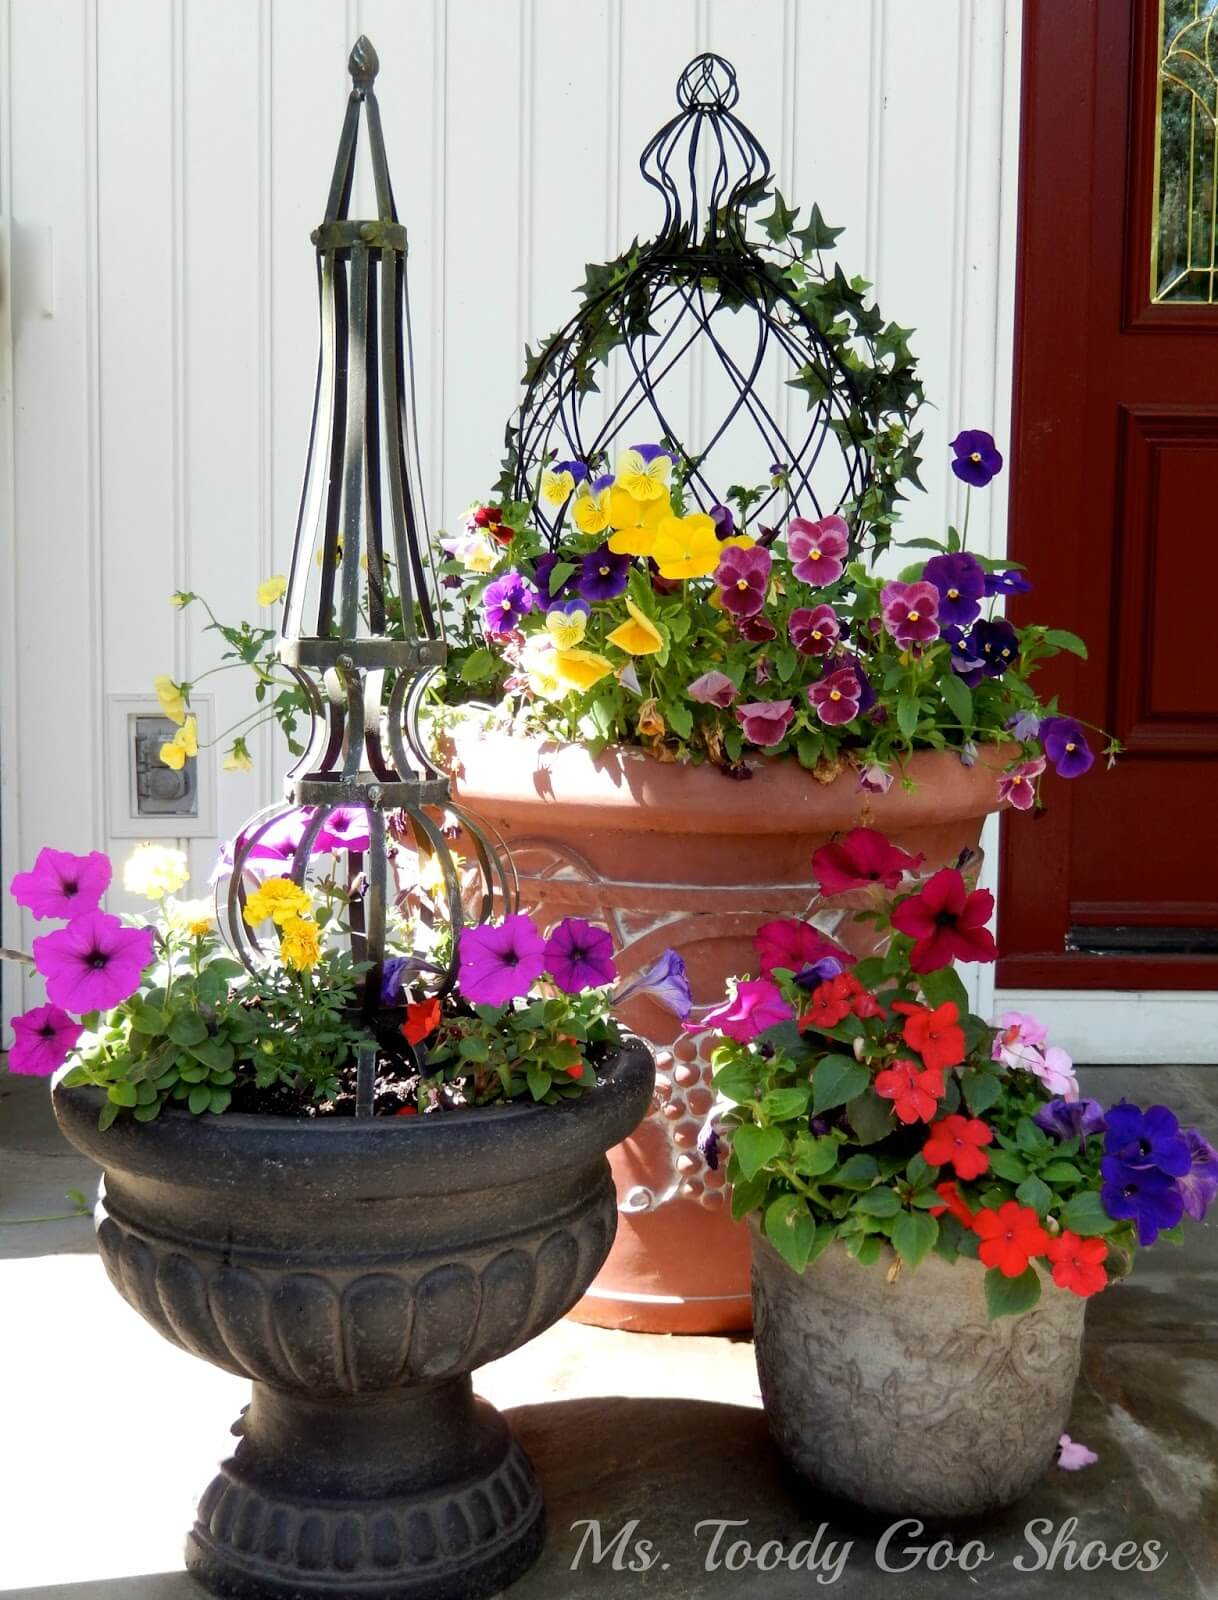 How To Make Beautiful Flower Pots At Home 29 Best Front Door Flower Pots Ideas And Designs For 2019